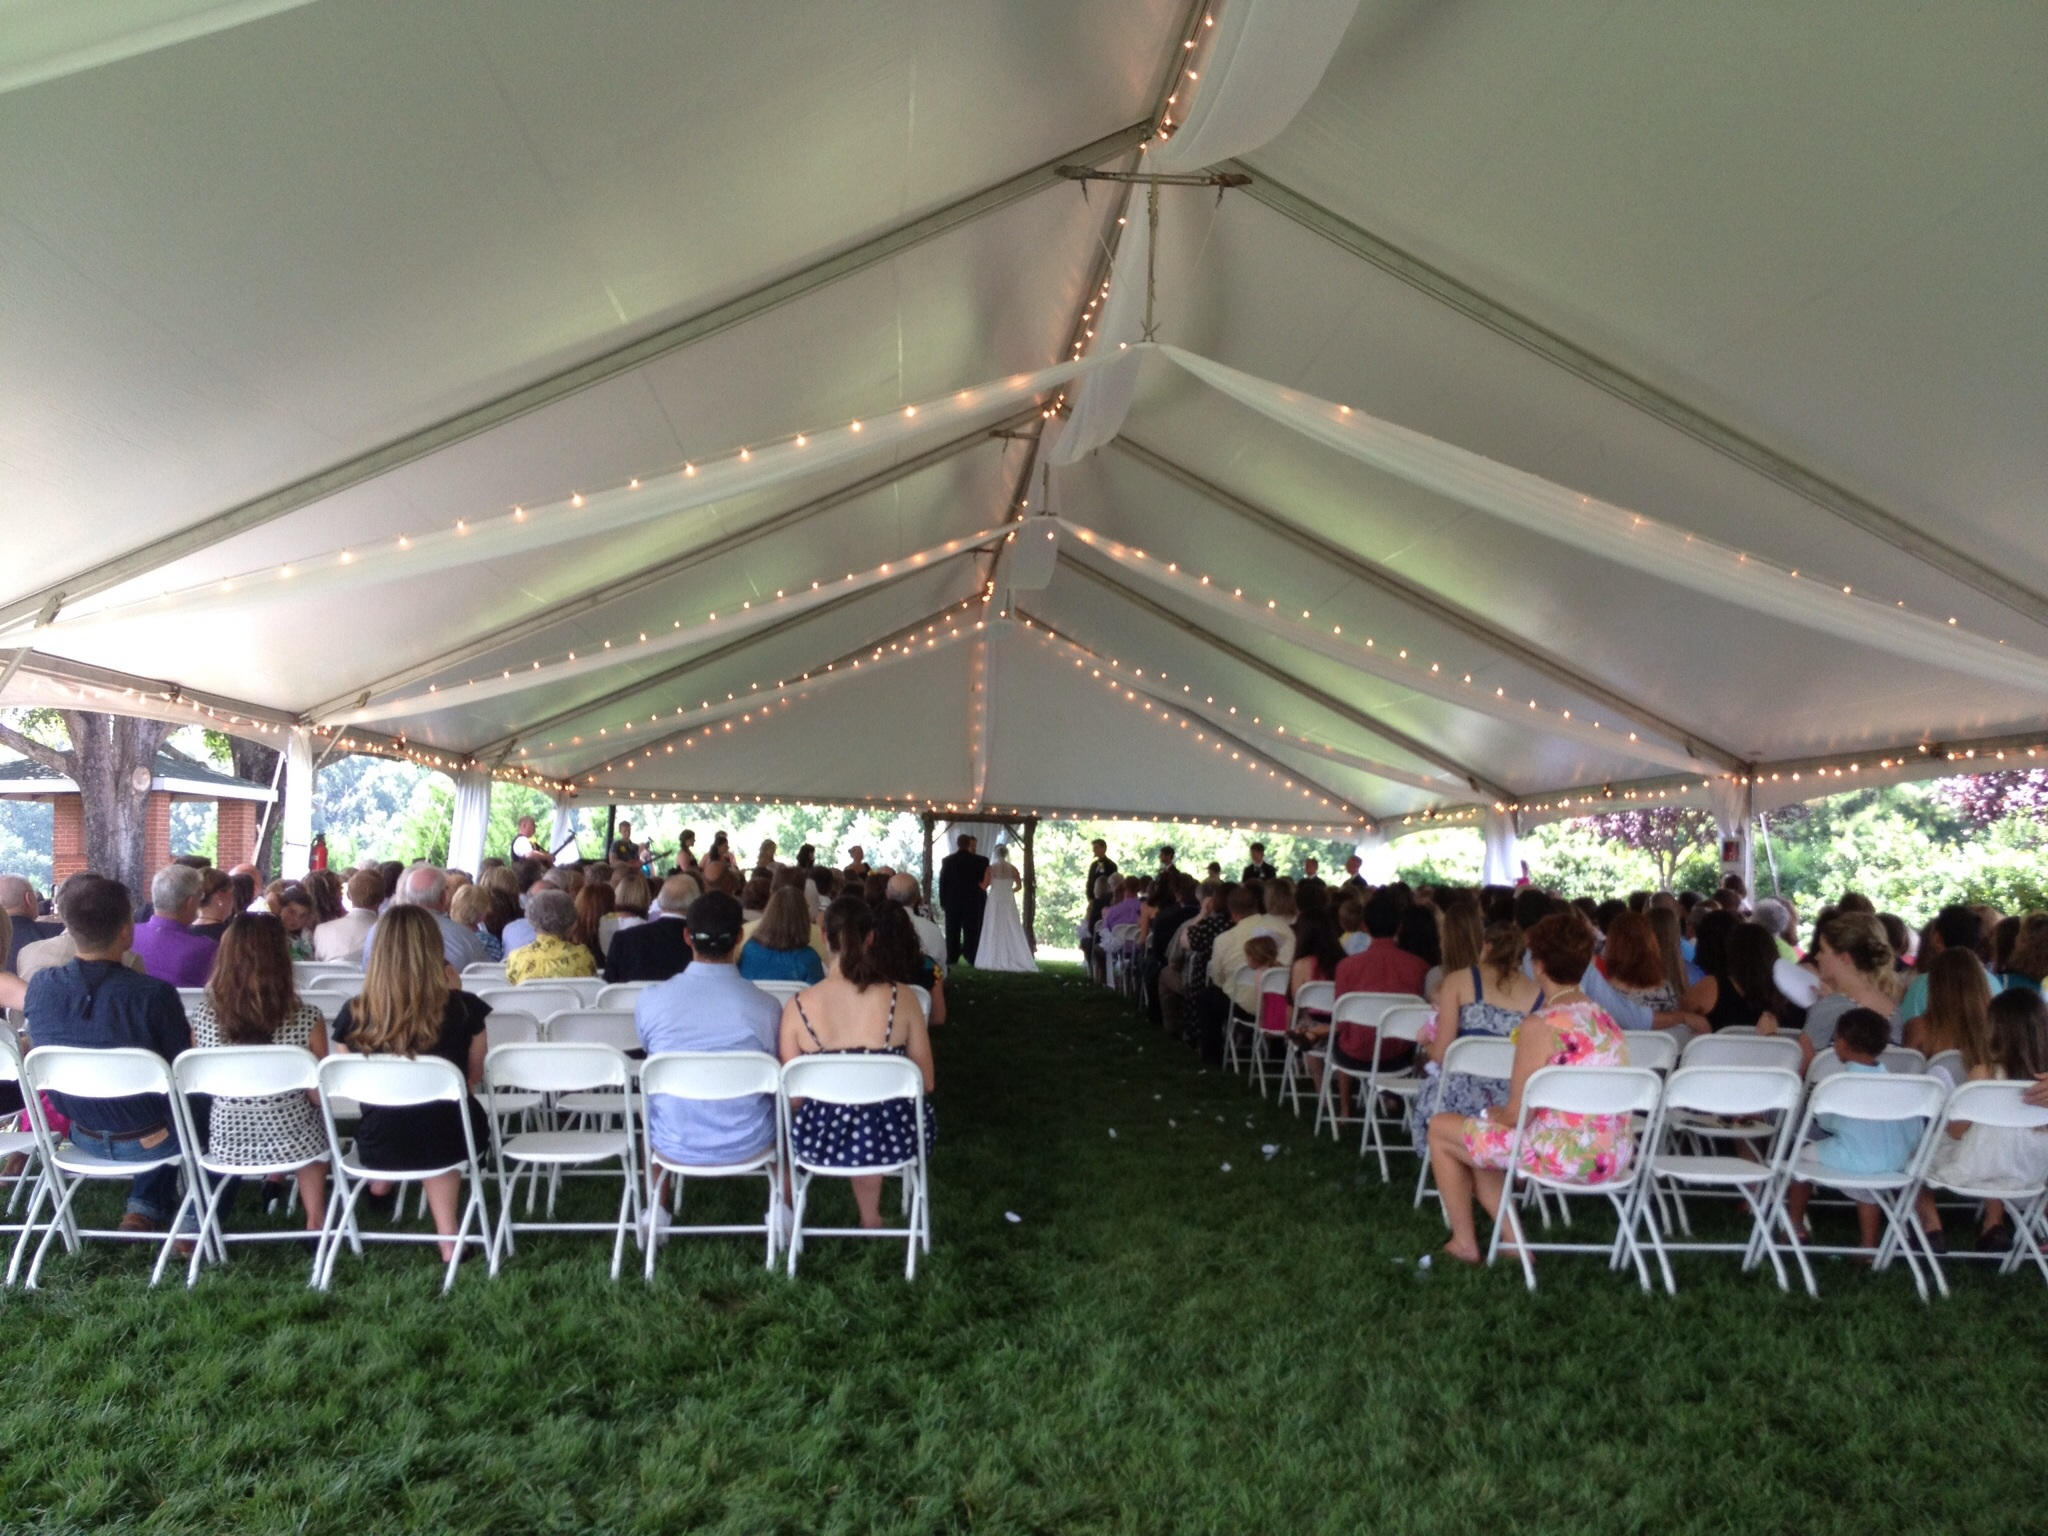 image & A tent for my wedding festivities? - Rand-Bryan House